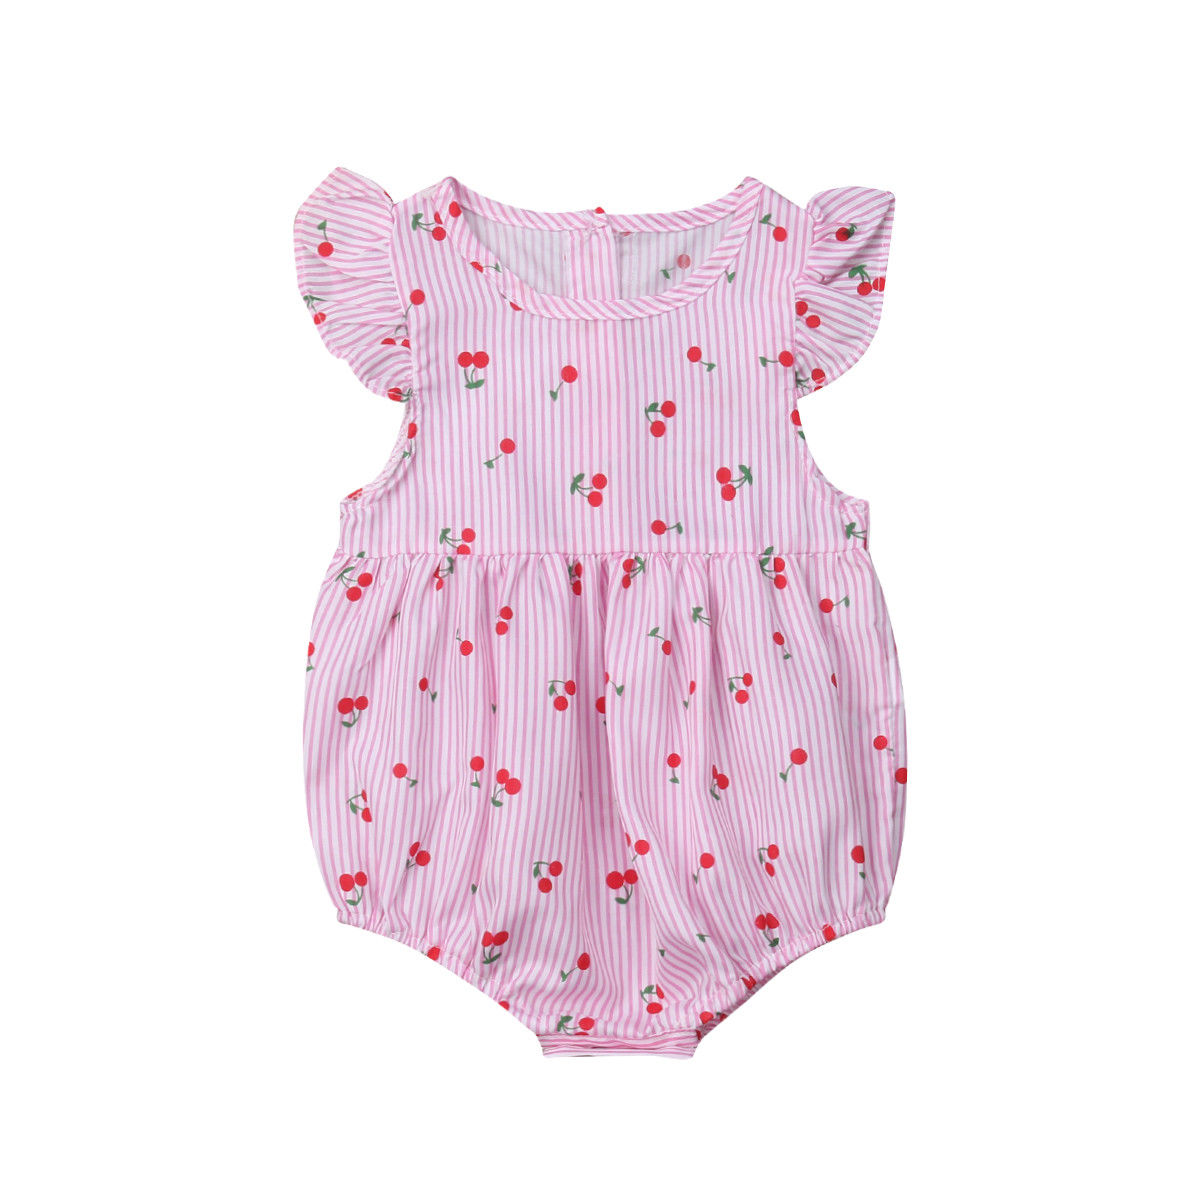 12M 2 24M 18M New Cute Baby//Toddler Romper// One Piece Size:  1